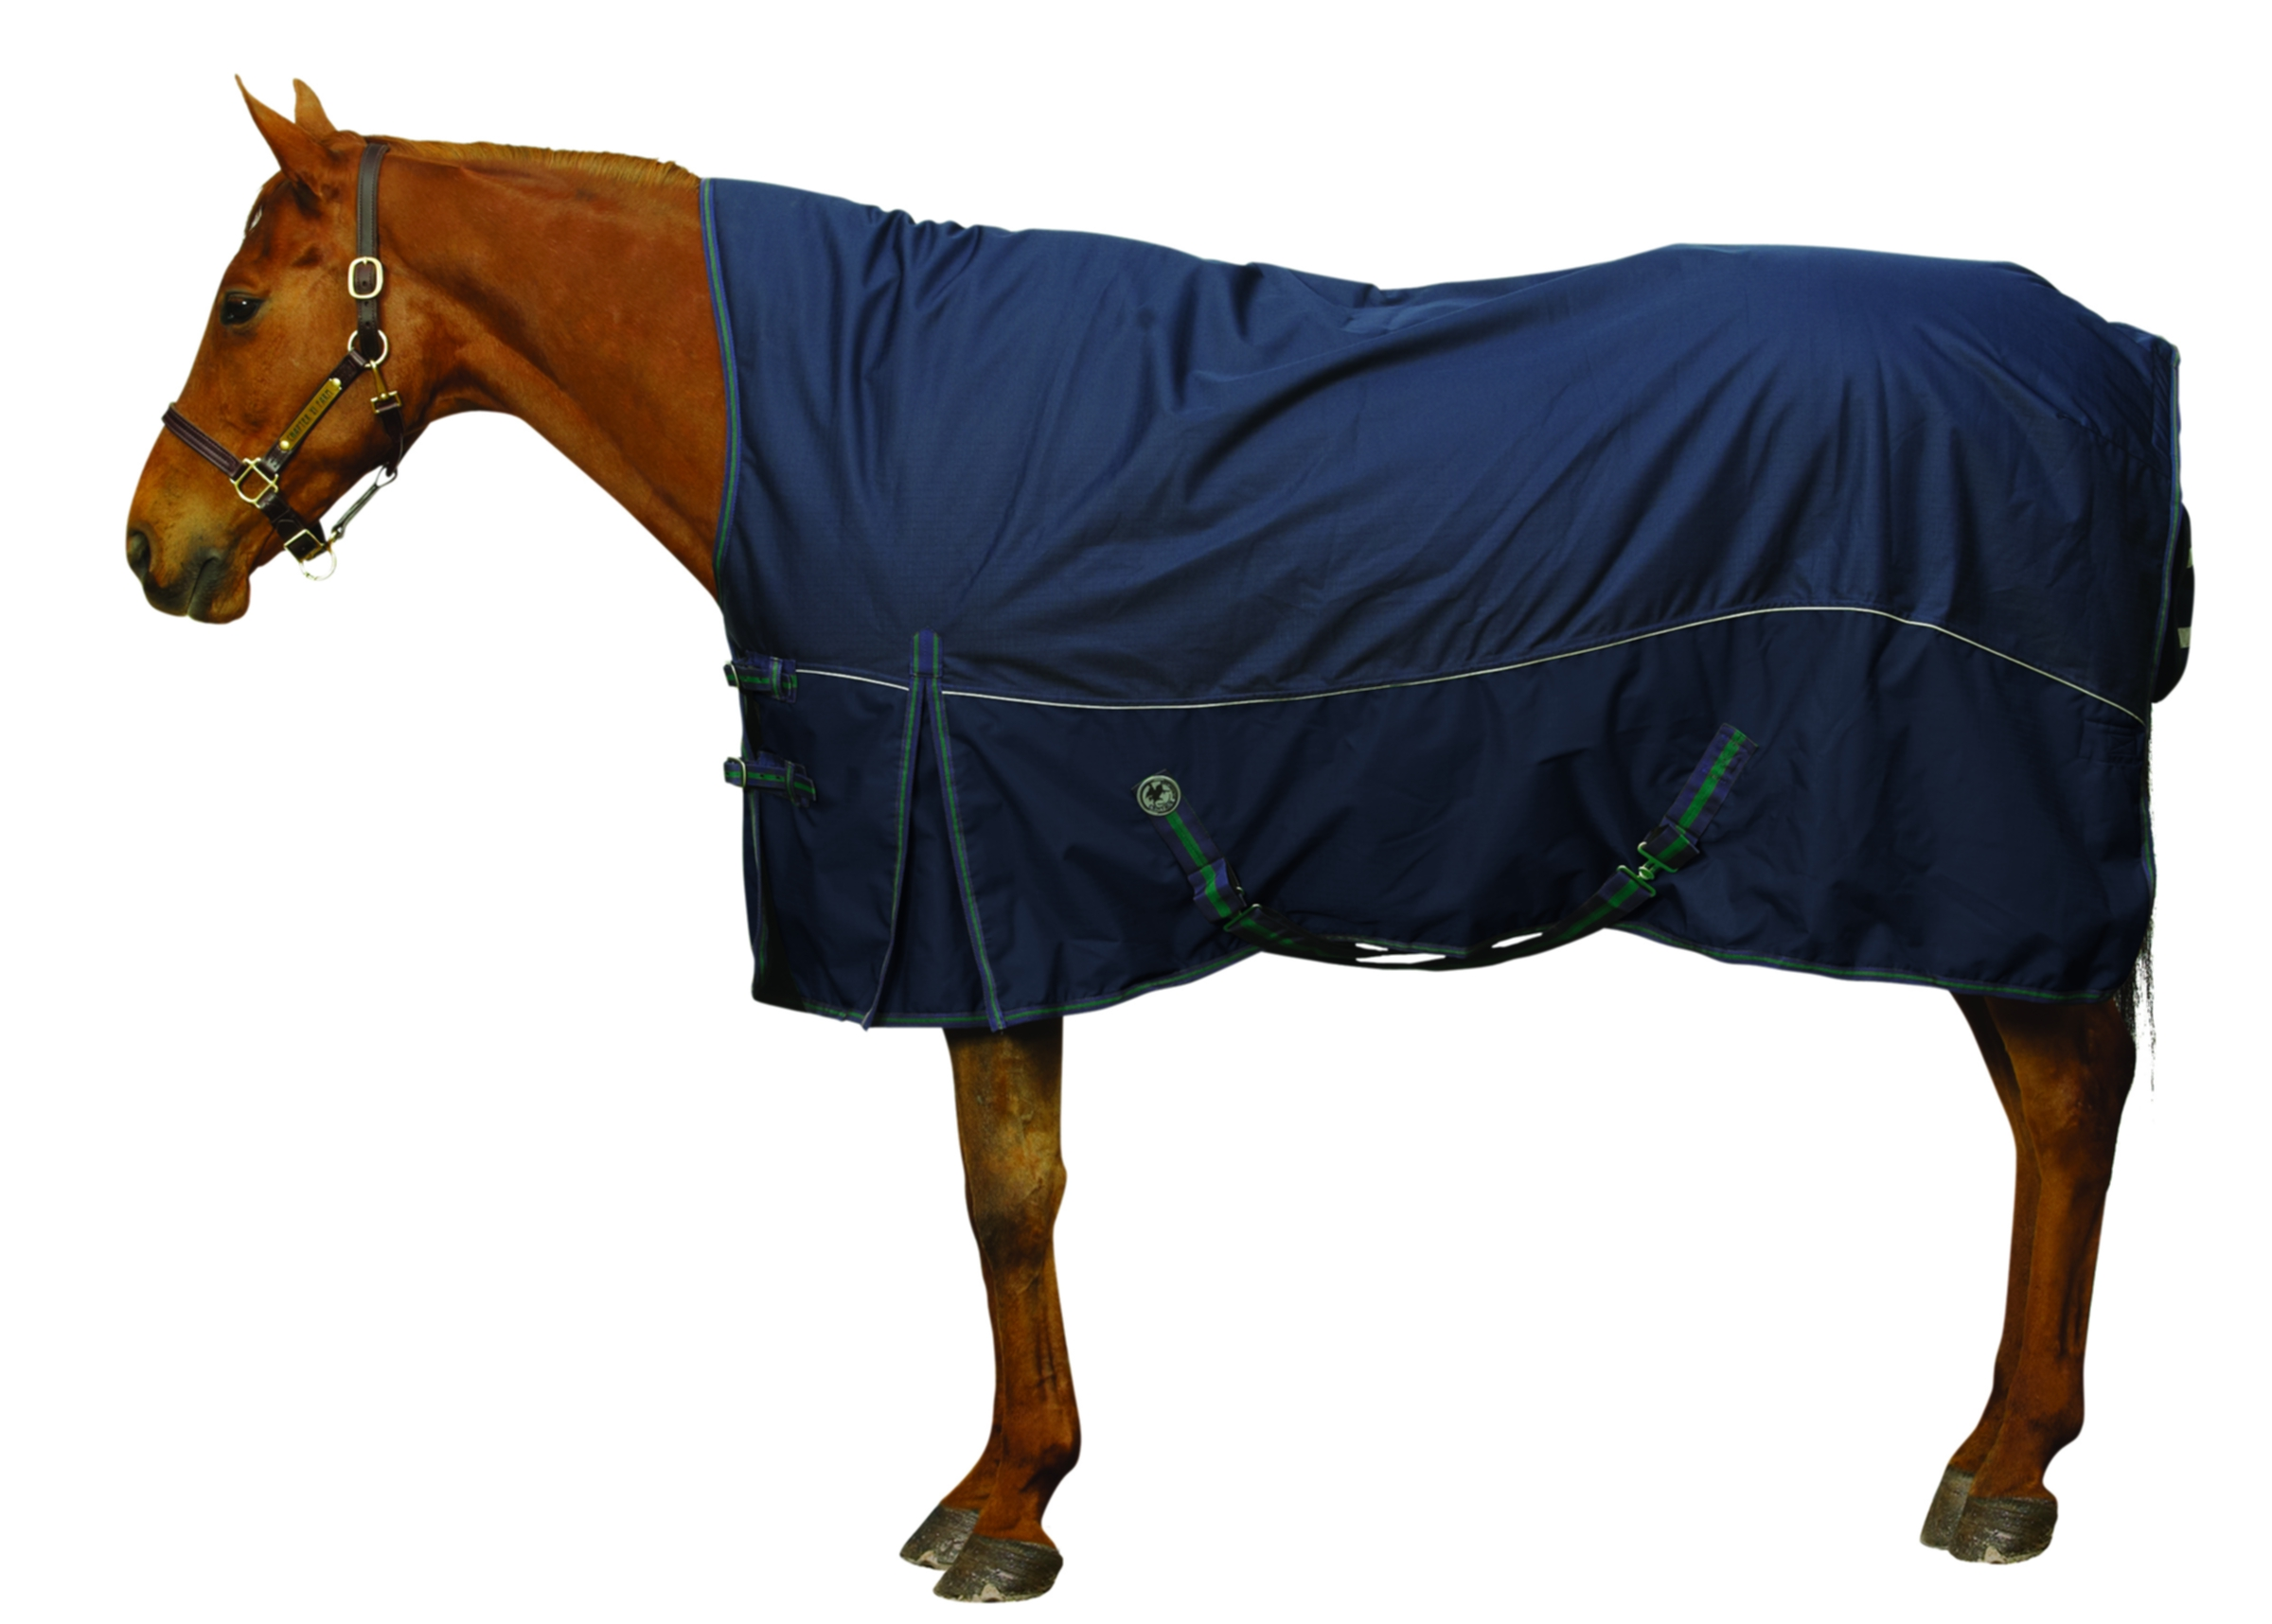 Centaur Midneck 600D Waterproof / Breathable Heavyweight Blanket